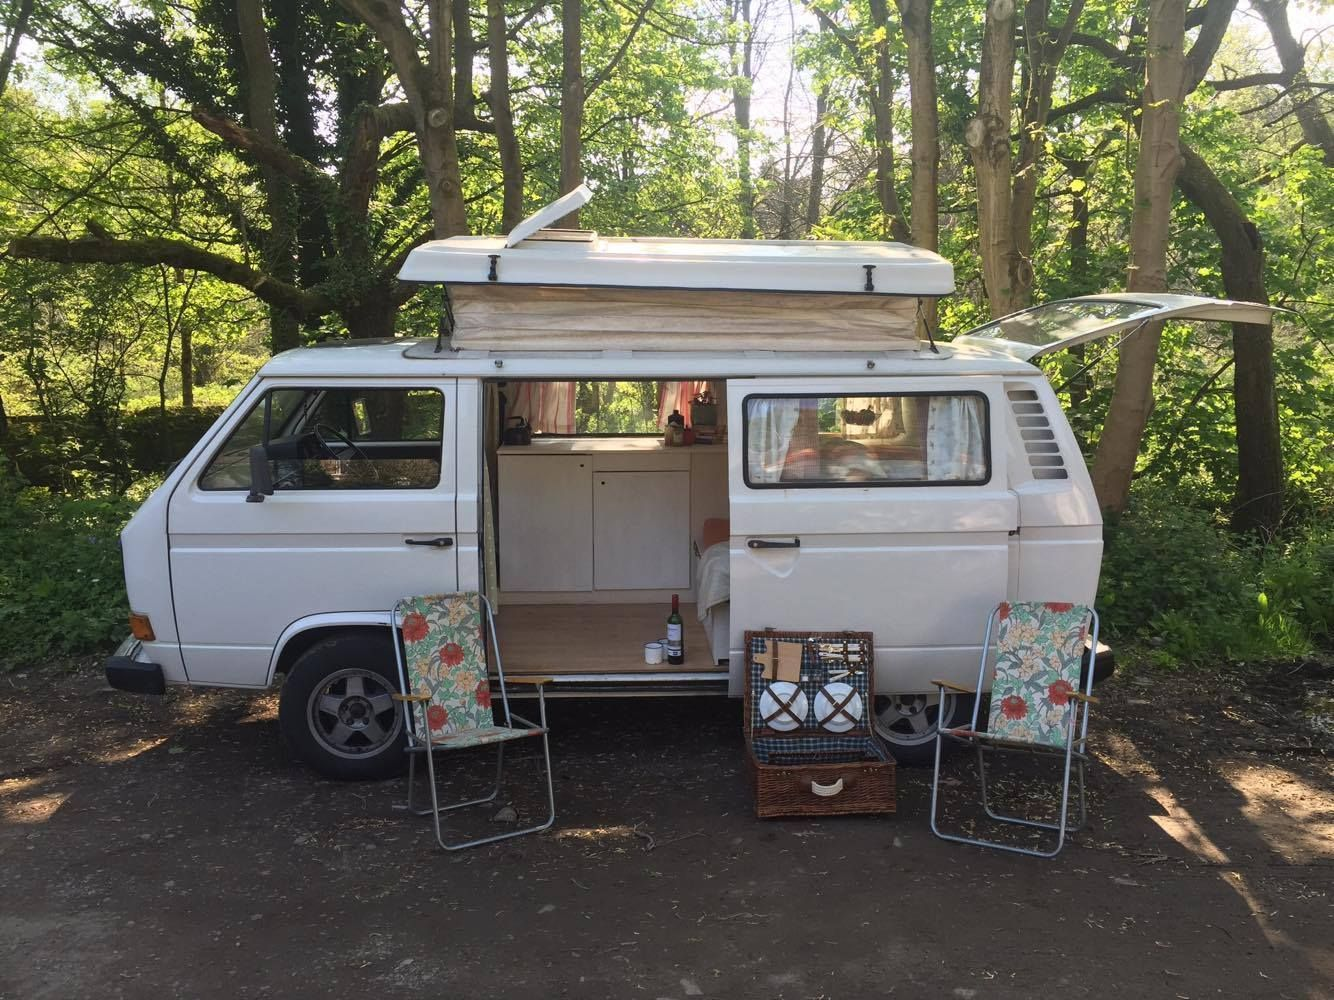 vw t25 camper van t3 not t1 t2 t1 t2 and vw. Black Bedroom Furniture Sets. Home Design Ideas